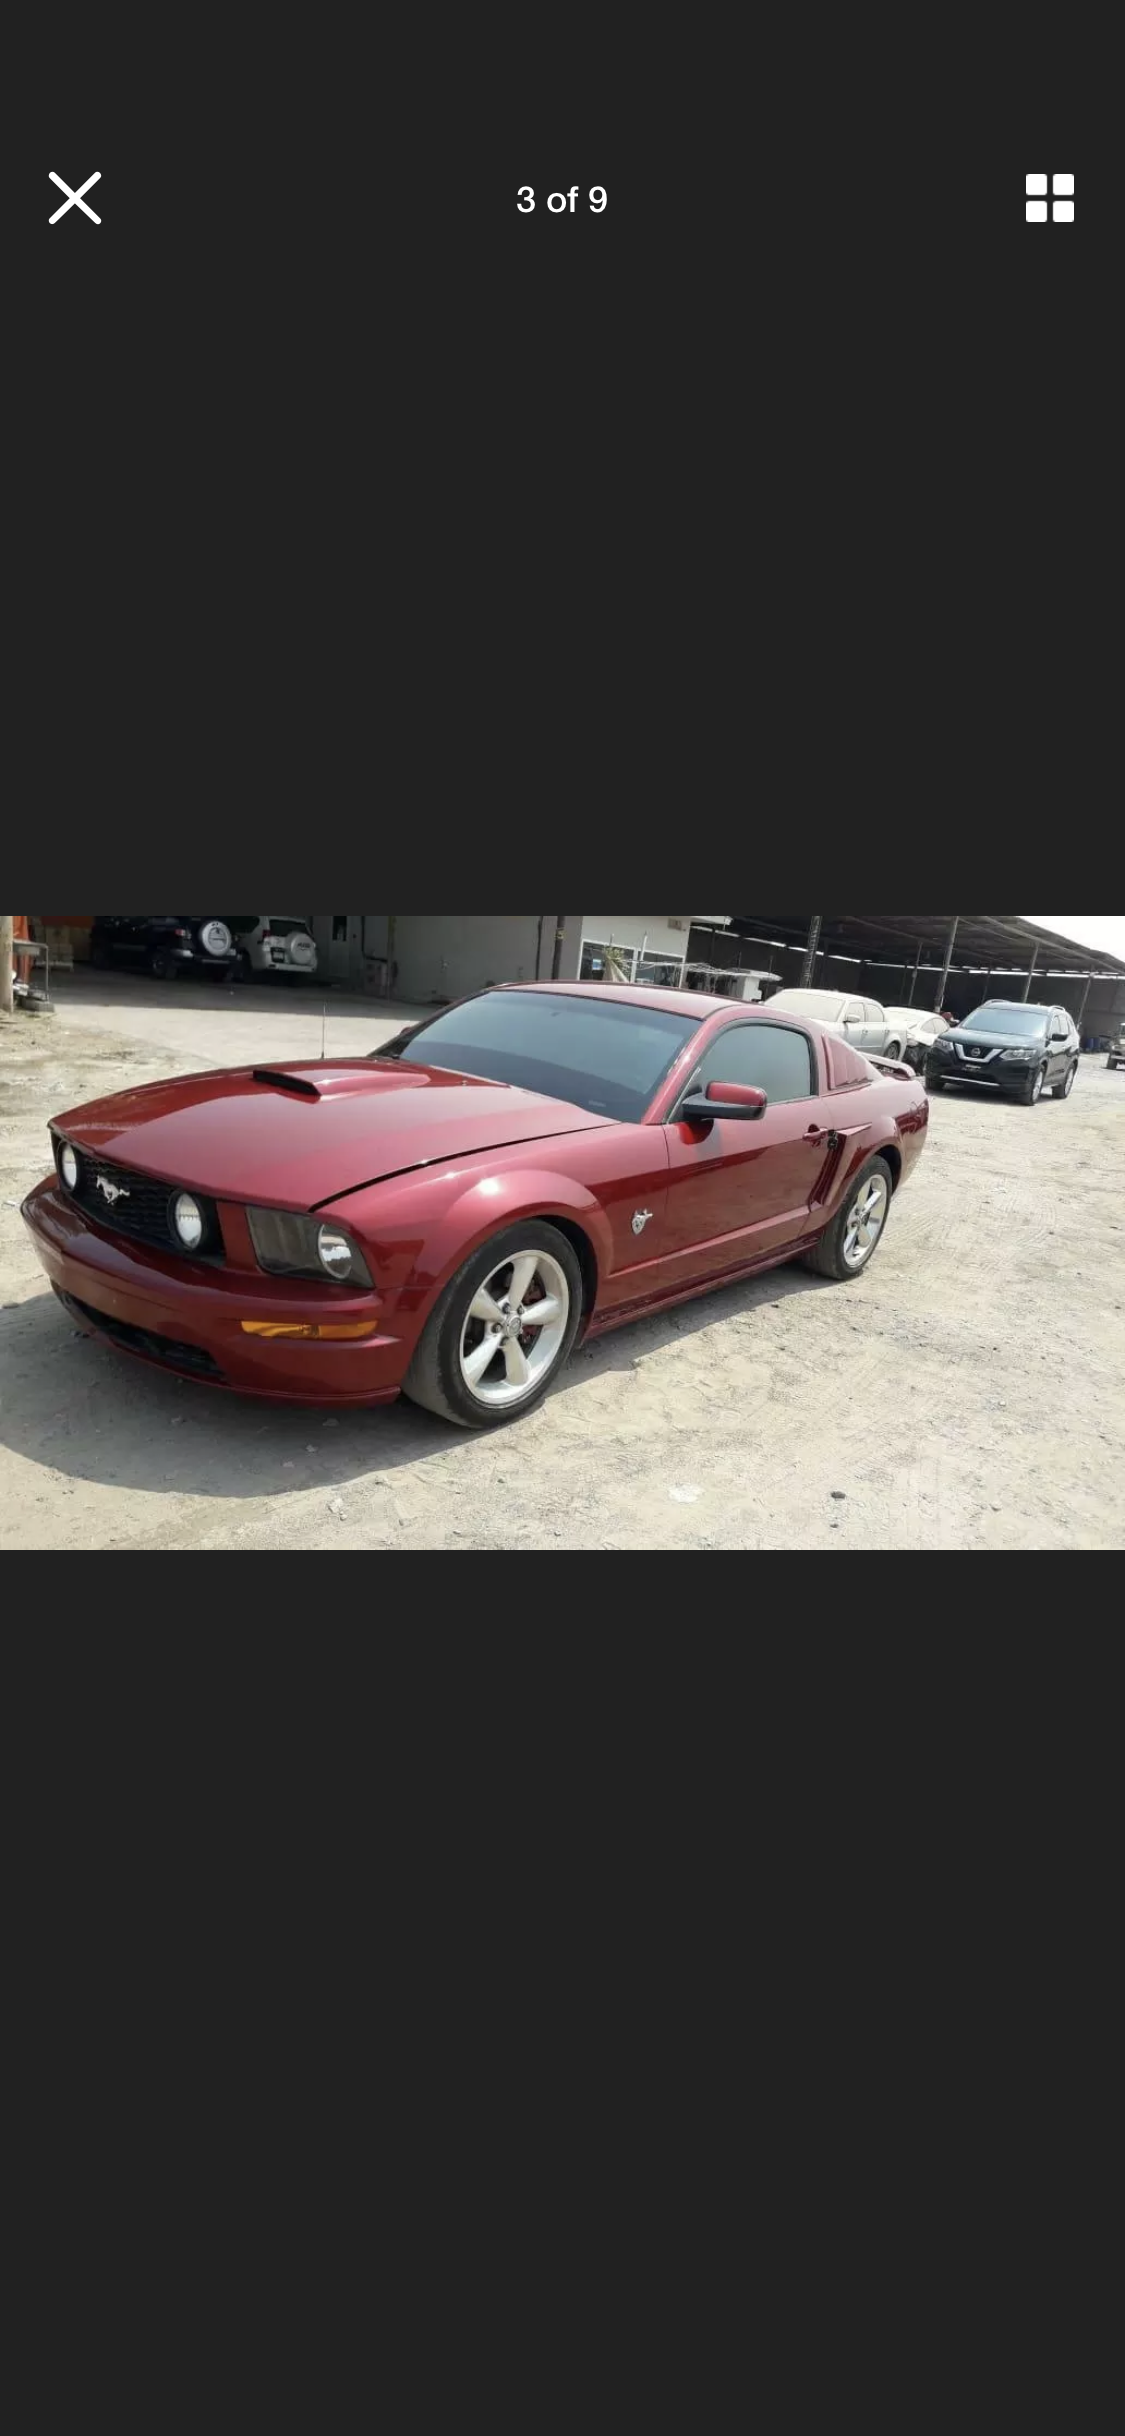 2009 FORD MUSTANG 4.6 V8 GT RARE MANUAL LHD FRESH IMPORT For Sale (picture 2 of 6)